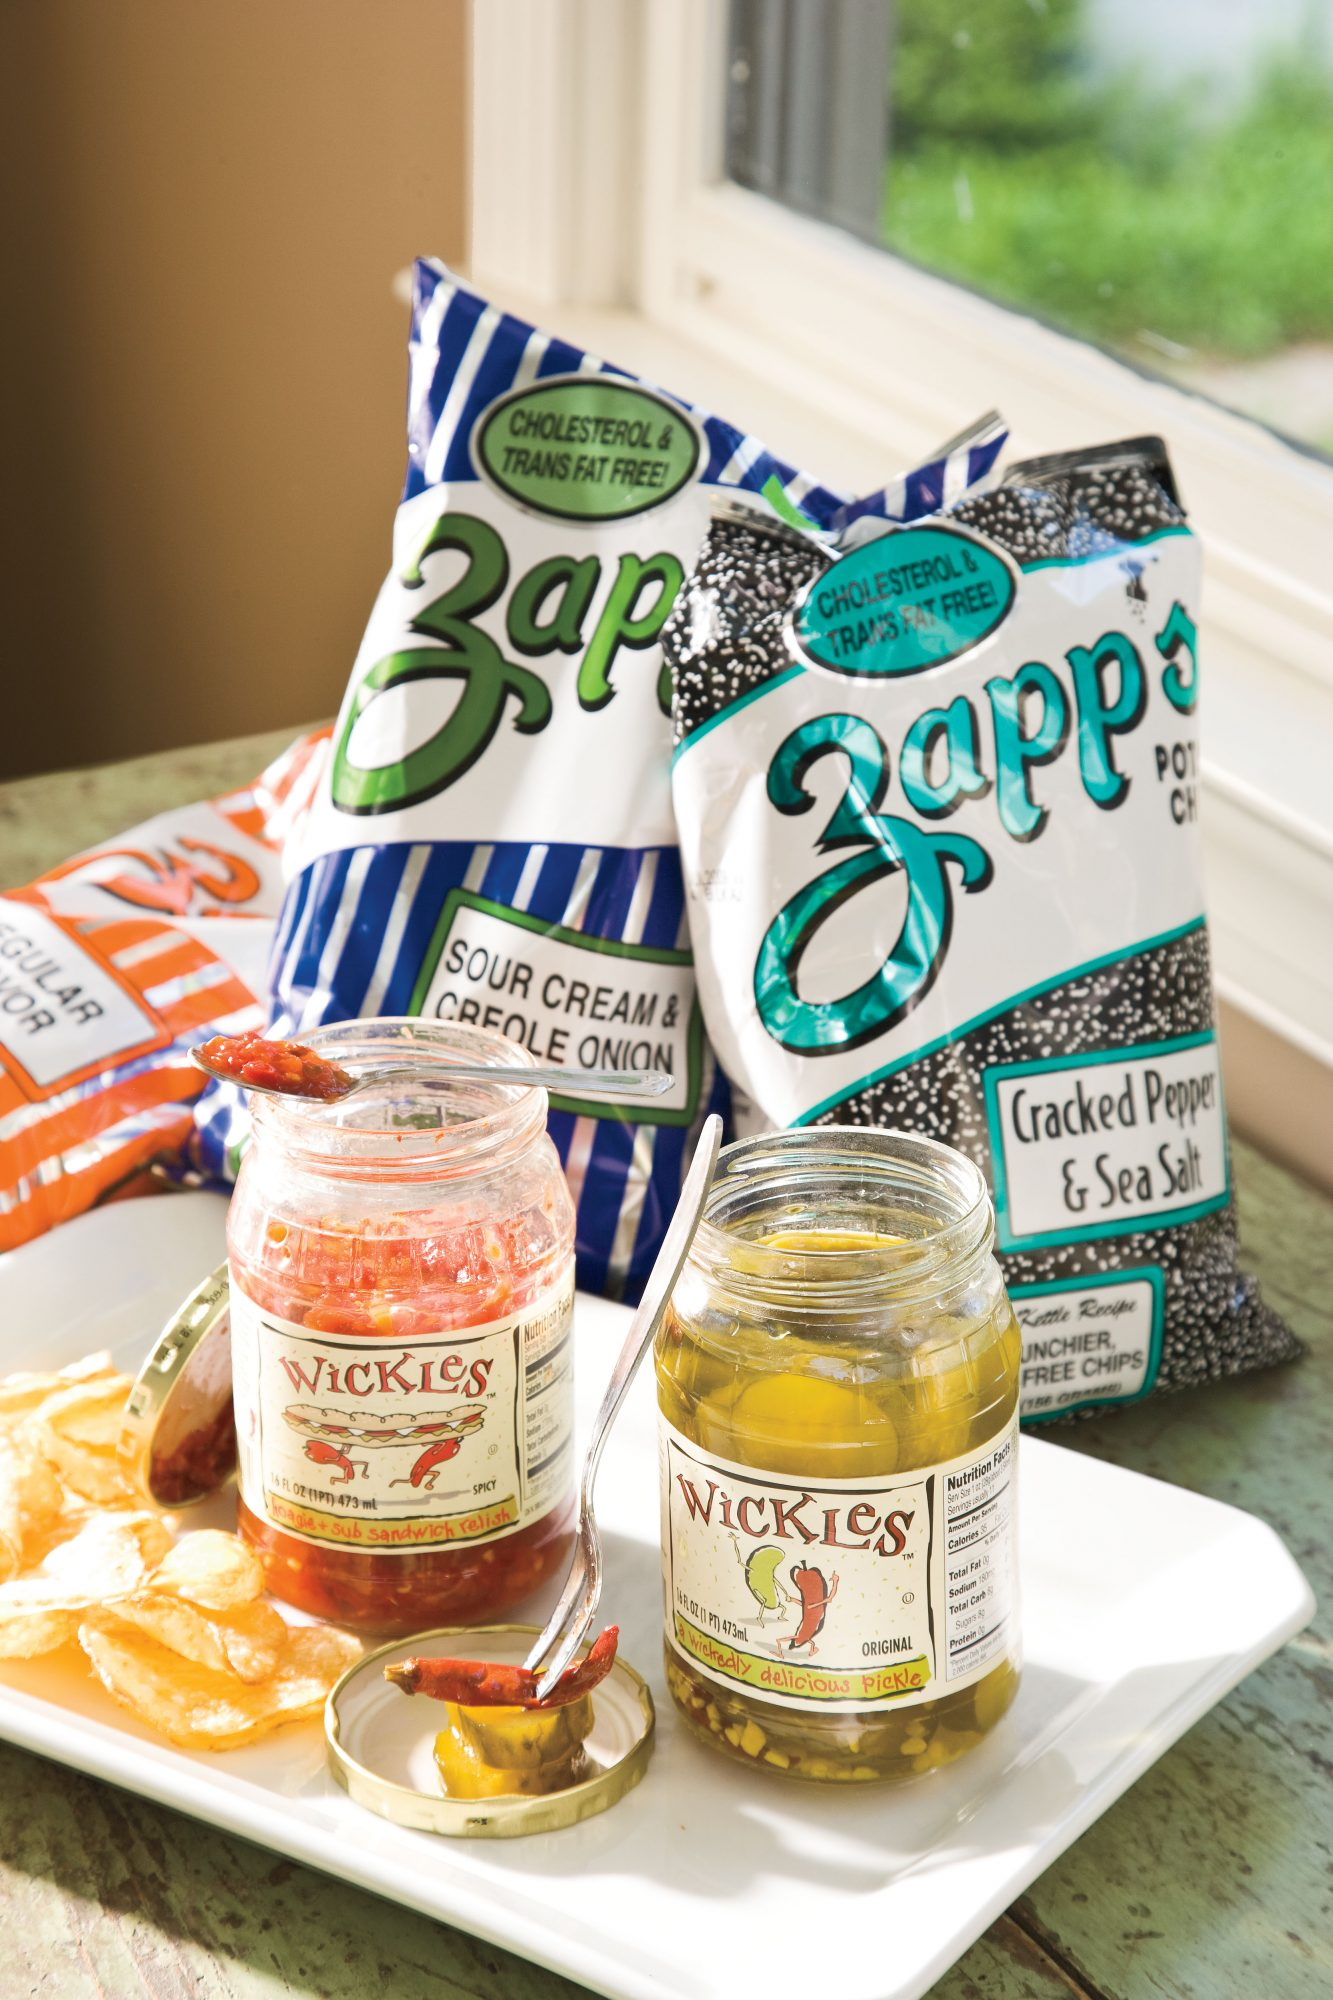 Zapp's Potato Chips and Wickles Pickles